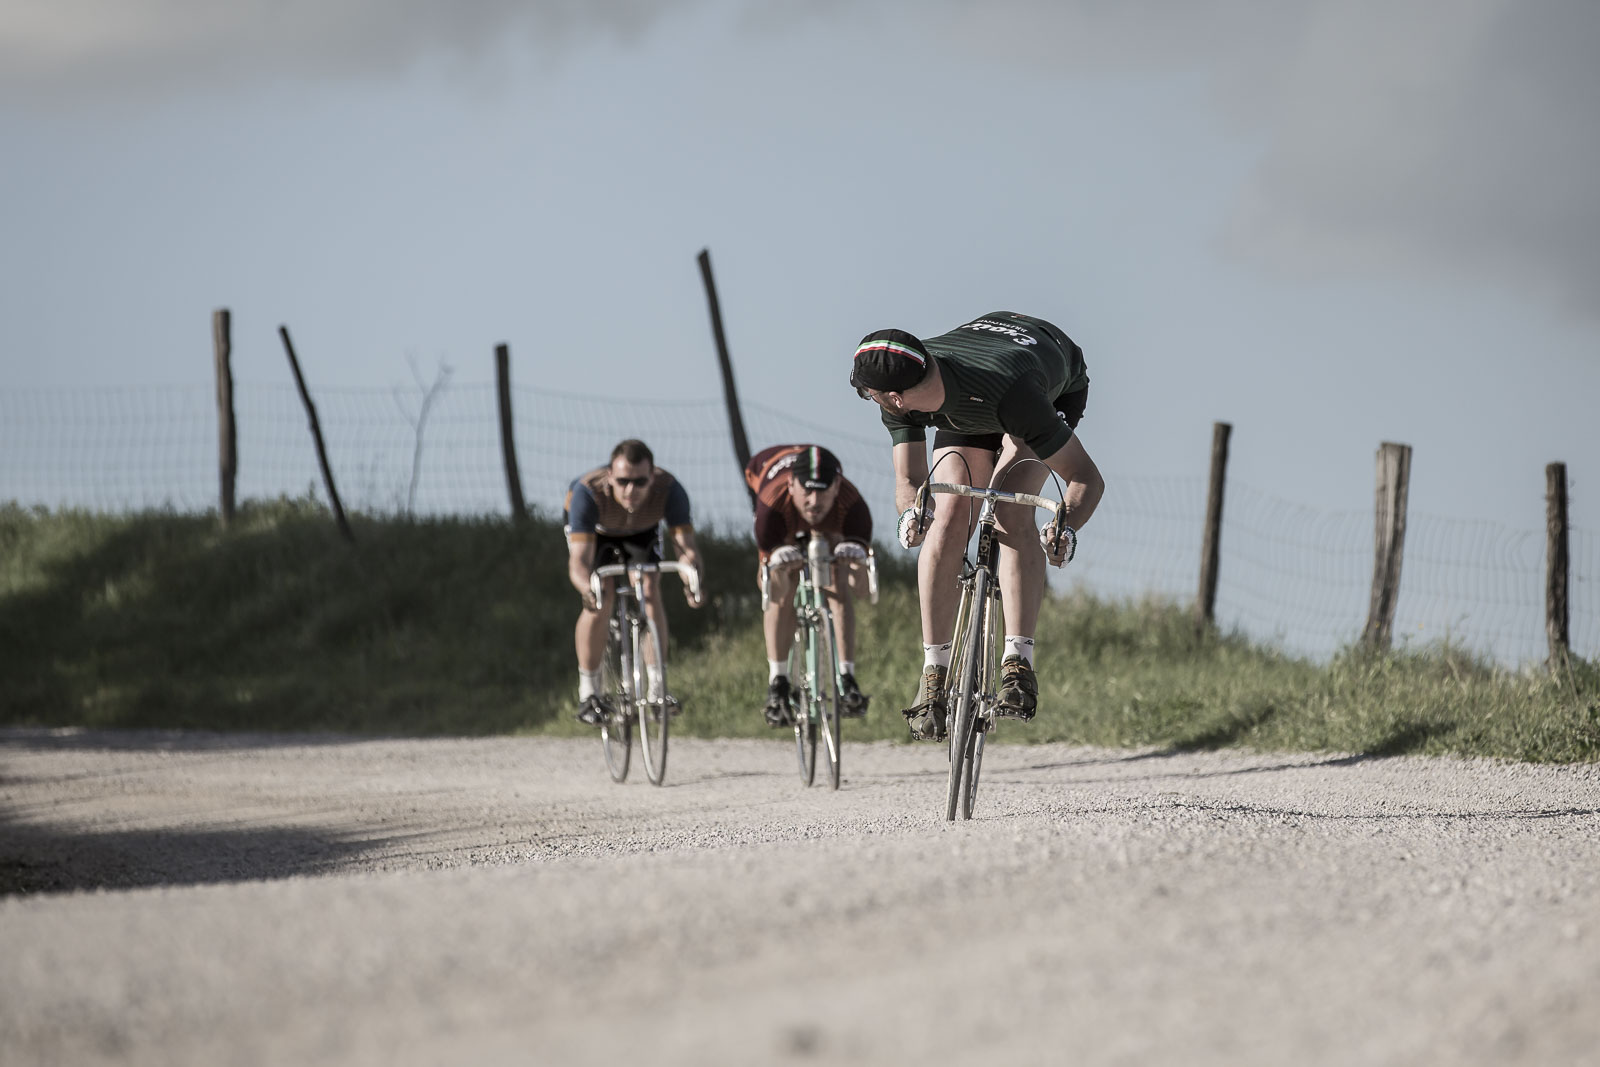 Three cyclists racing in Eroica kit